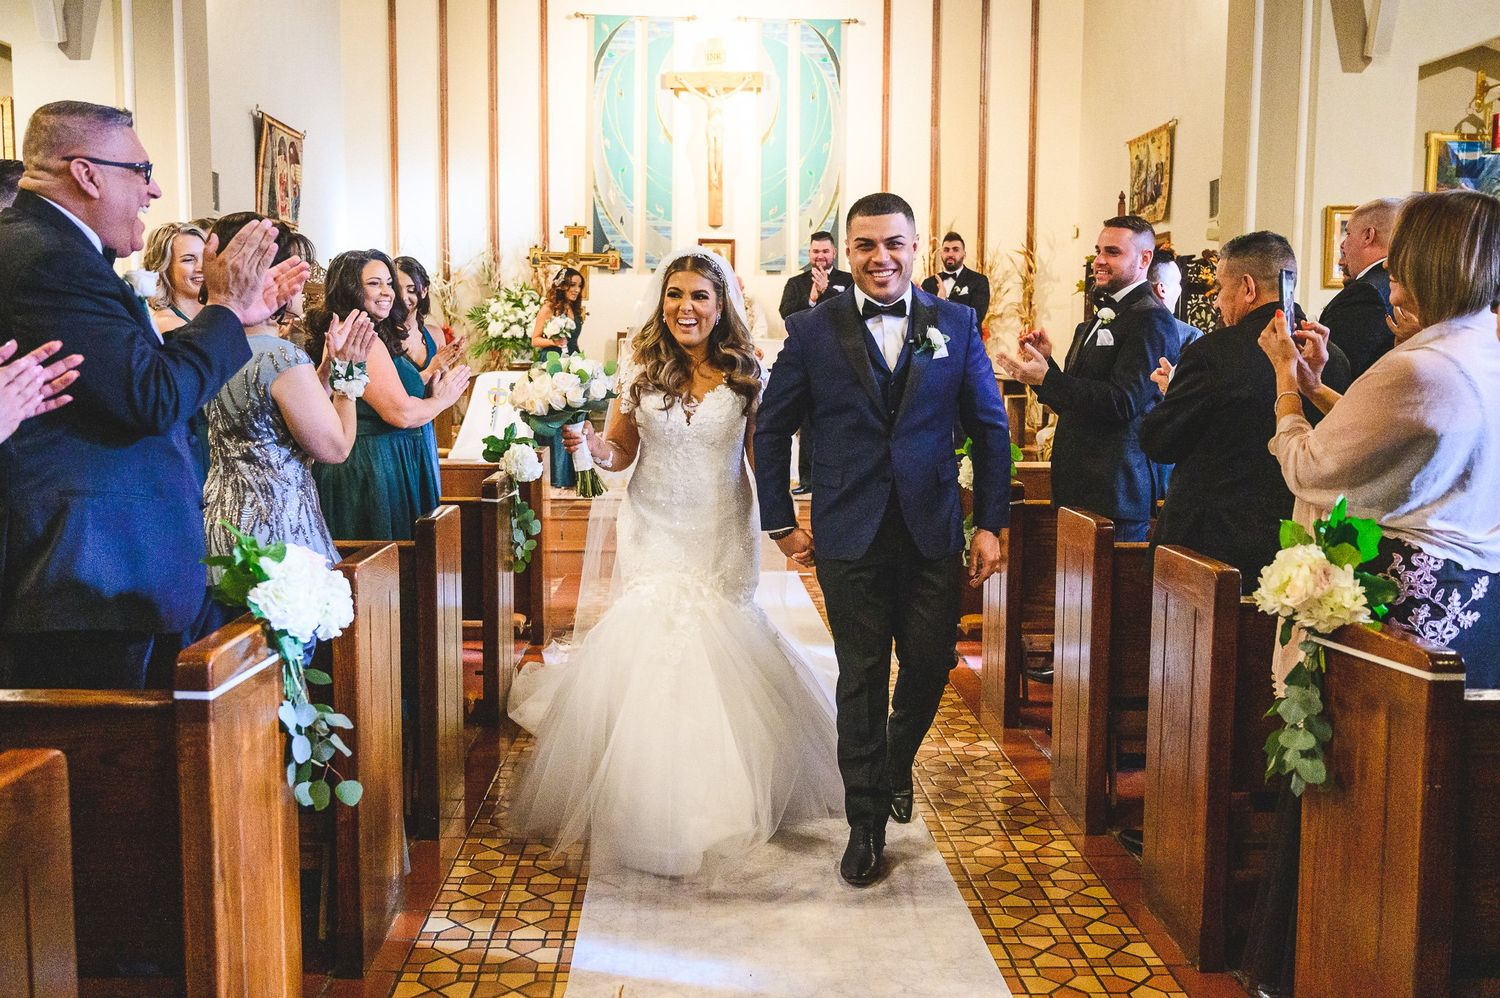 bride and groom walking down isle after being married